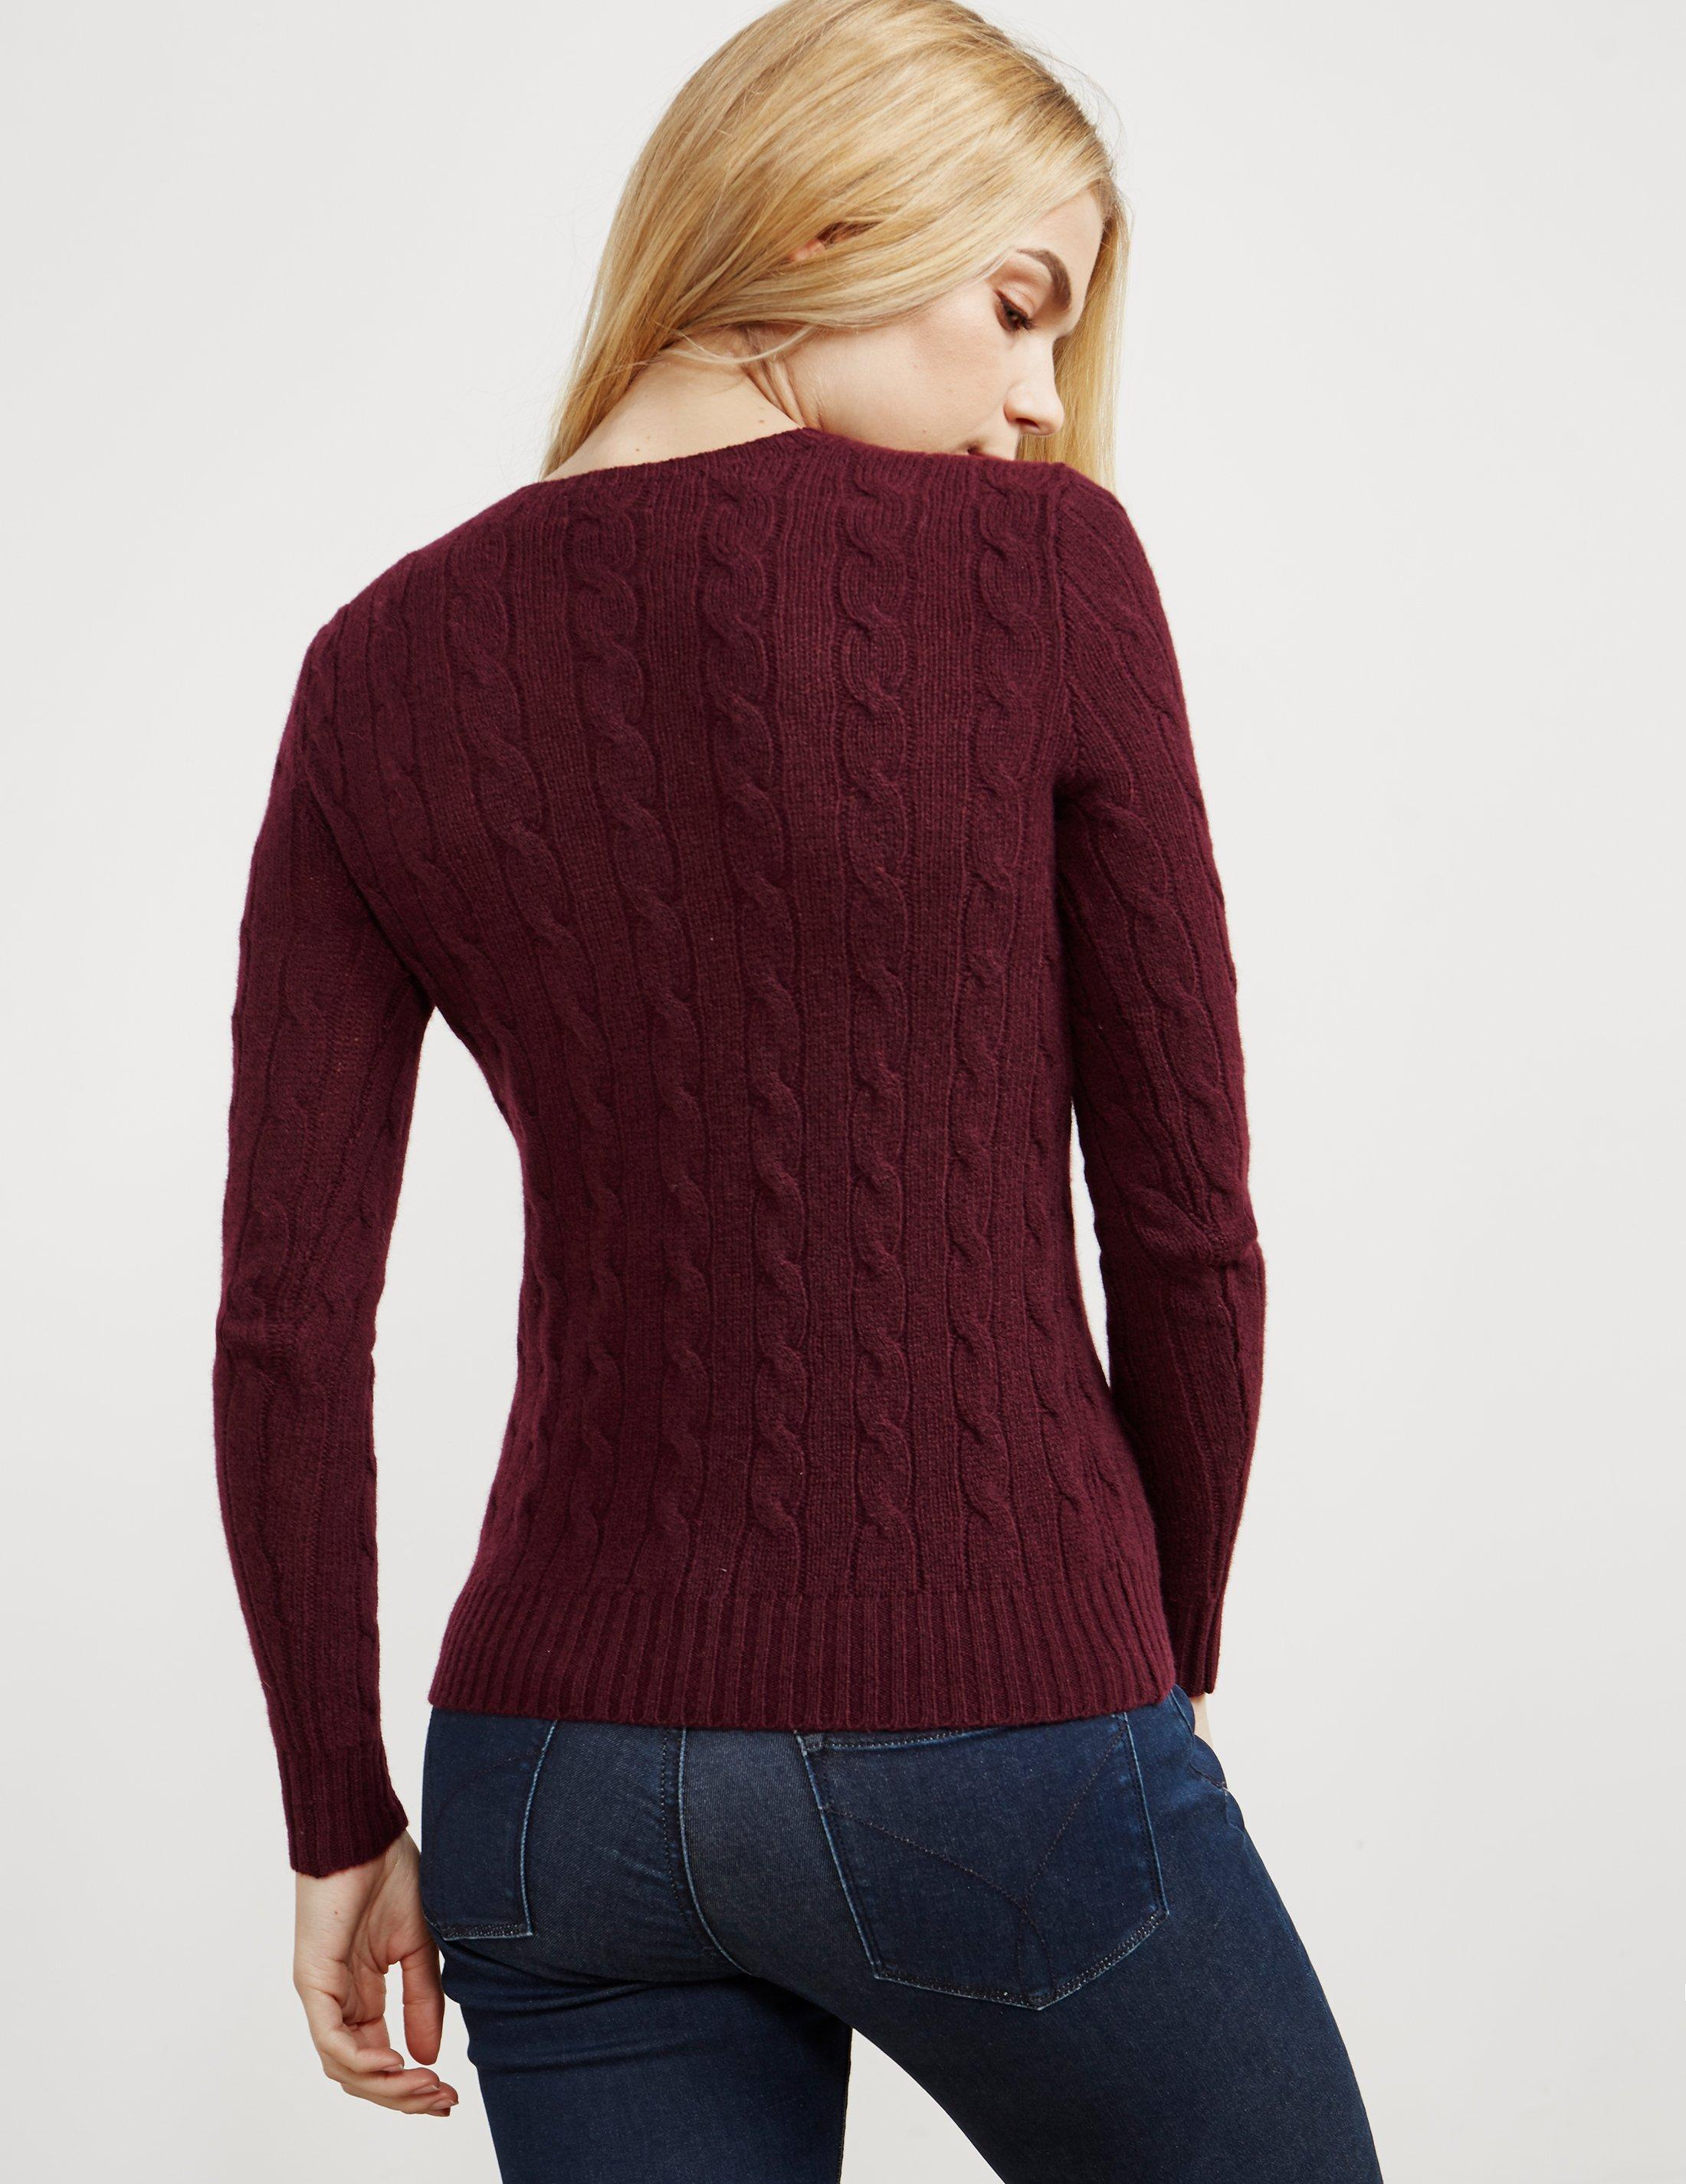 704437450d6e Lyst - Polo Ralph Lauren Womens Juliana Knitted Jumper Red in Red